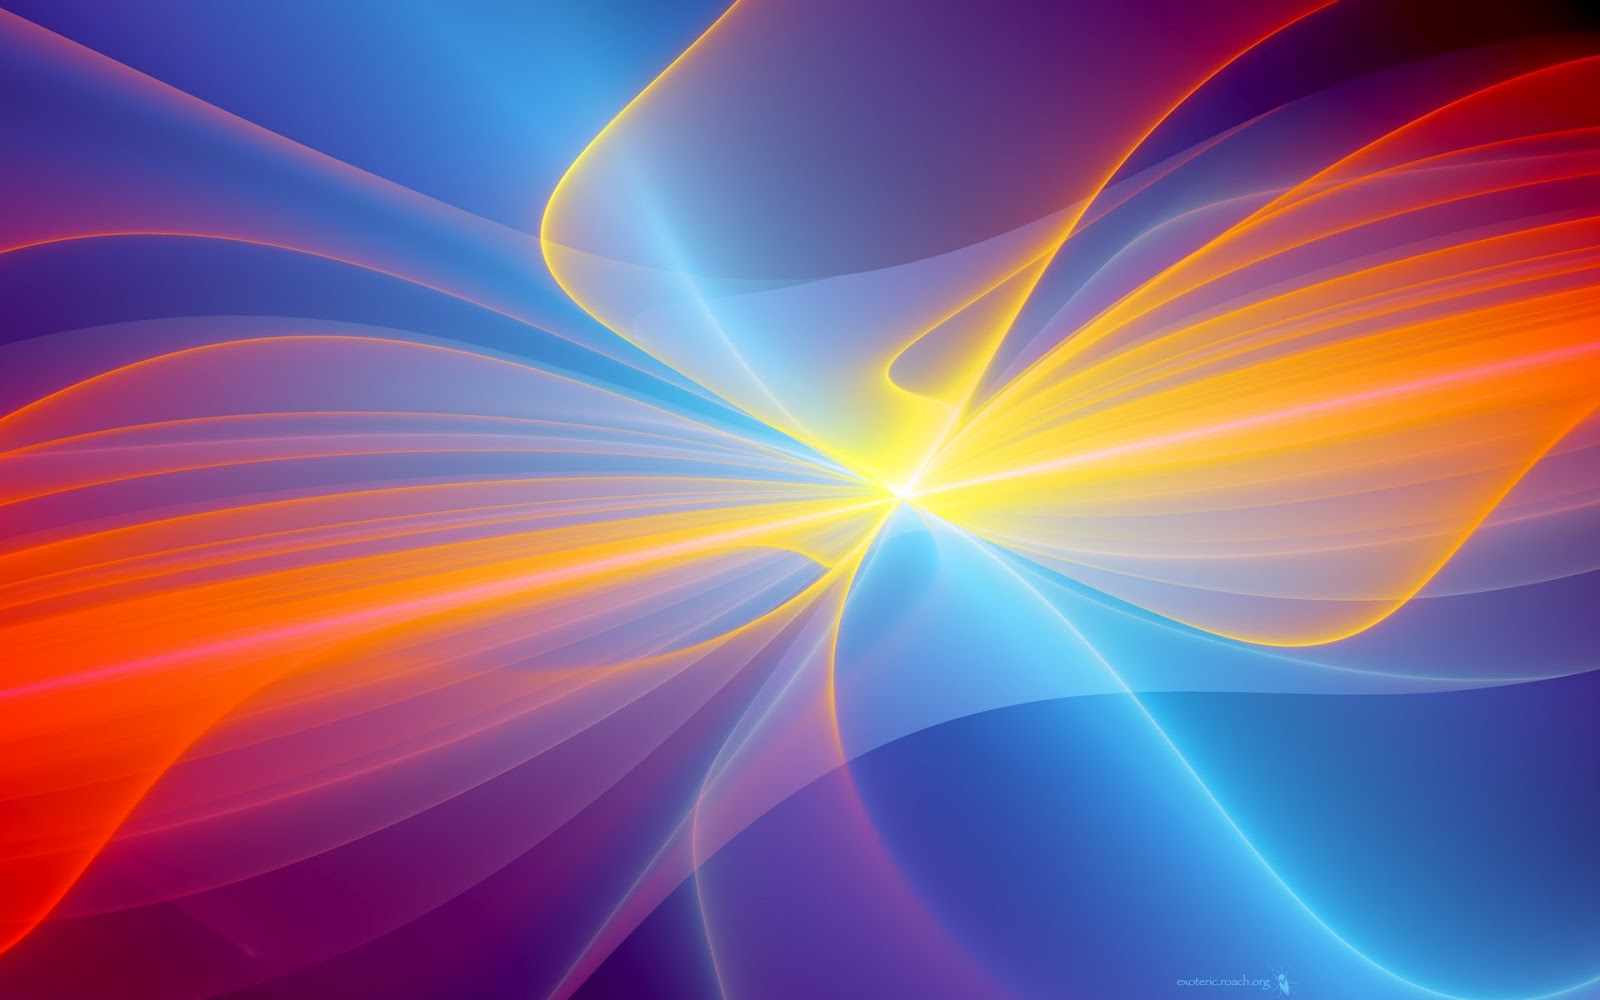 http://1.bp.blogspot.com/-ZG7iYrT5PUQ/T-p1RcWYukI/AAAAAAAABJc/0bG6D4YP-Yo/s1600/flow_abstract_wallpaper.jpg